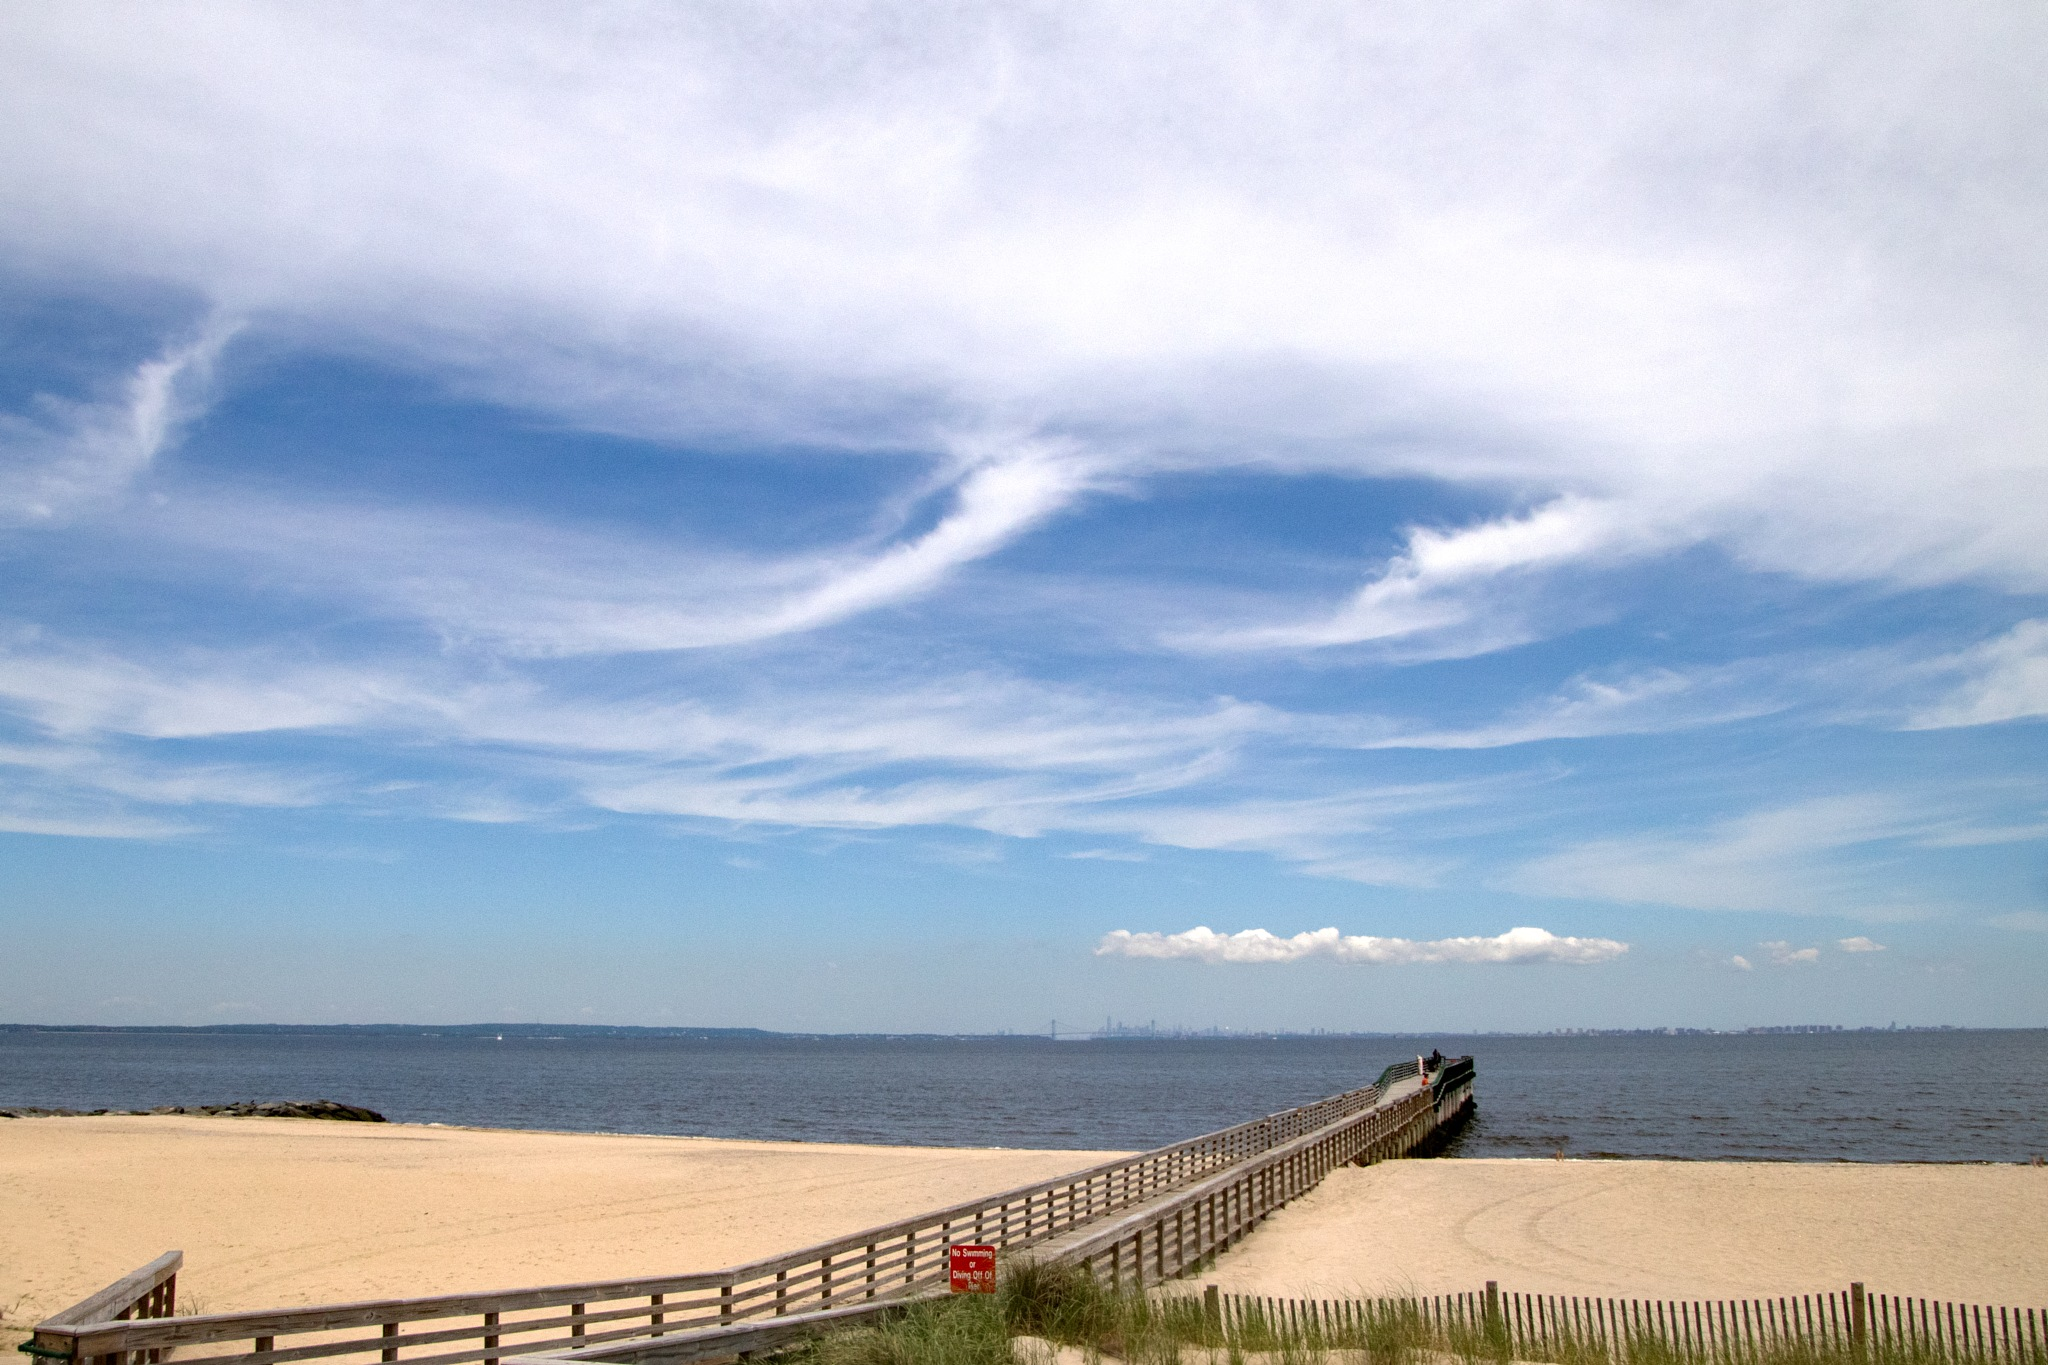 Fishing Pier at the Beach by Judy Florio